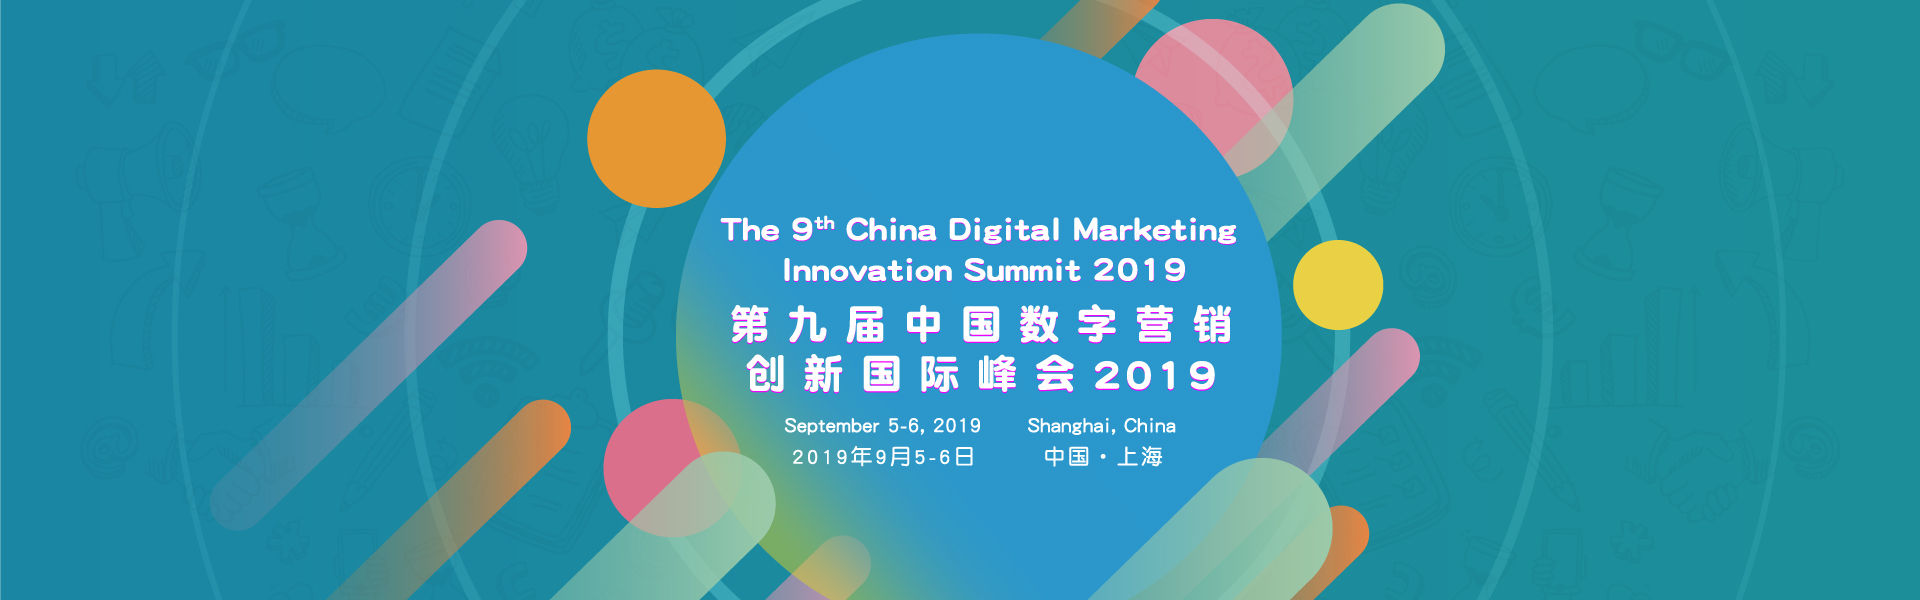 the 9th China Digital Marketing Innovation Summit 2019